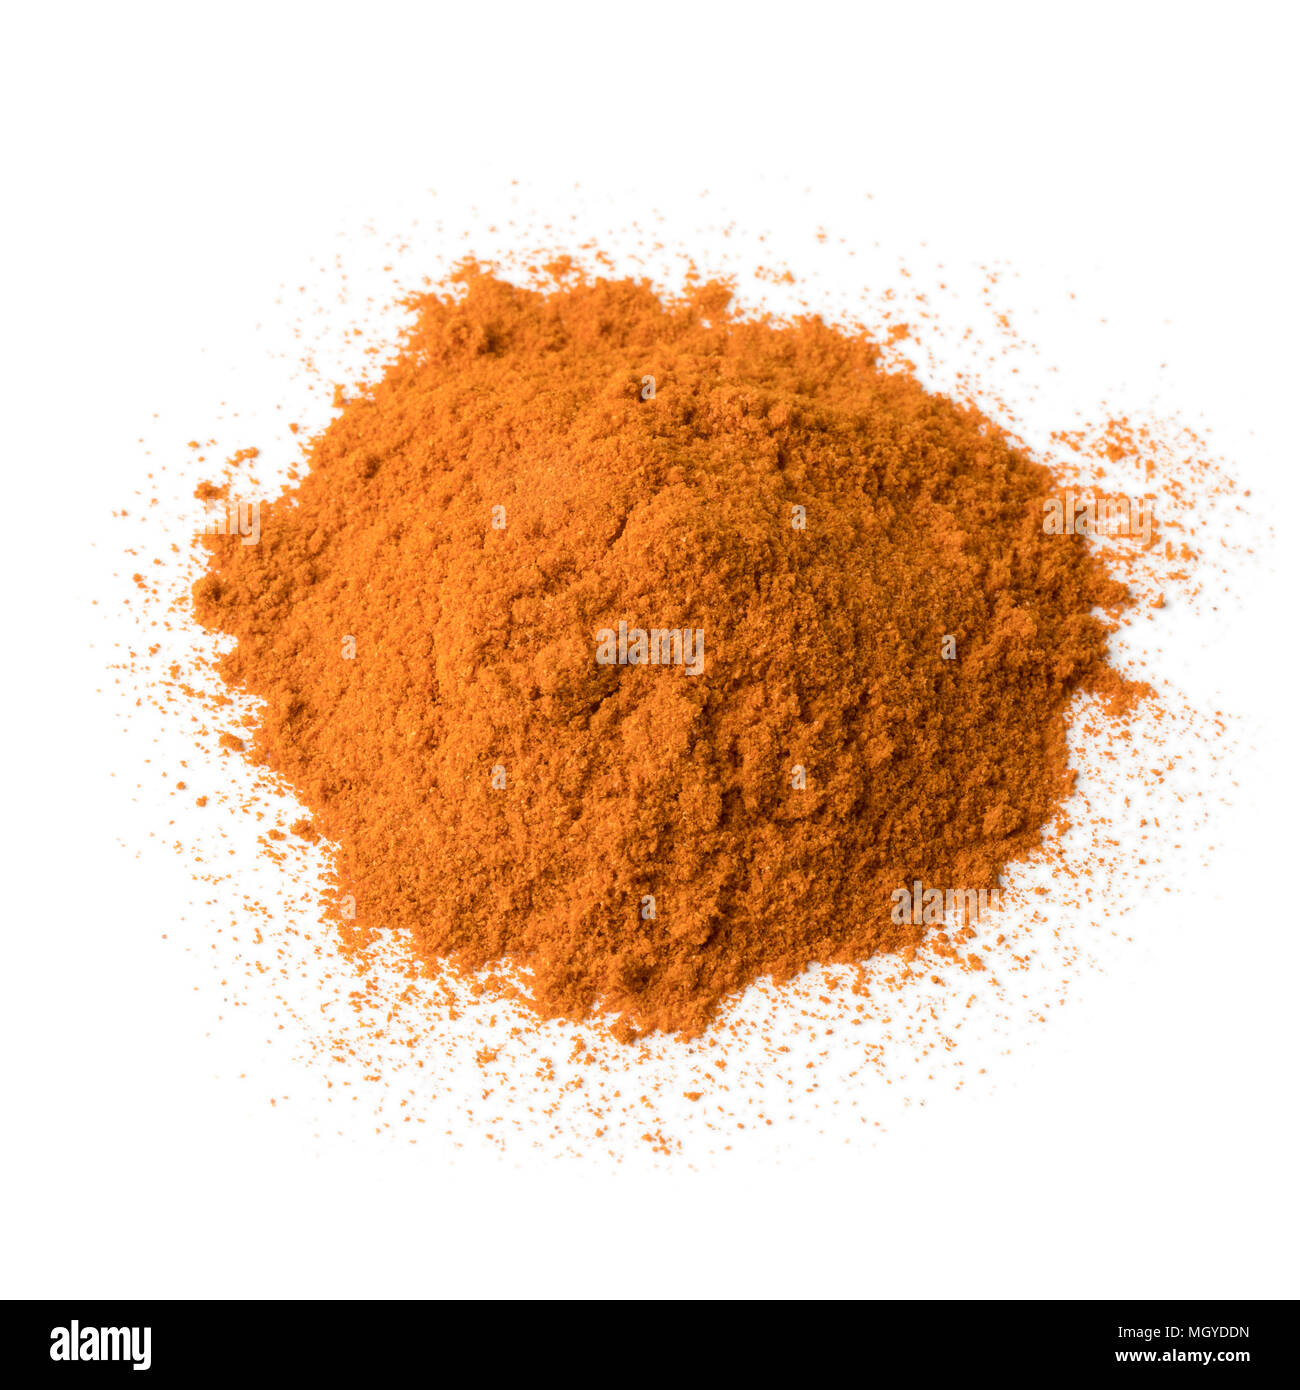 Heap of Cayenne pepper isolated on white background - Stock Image